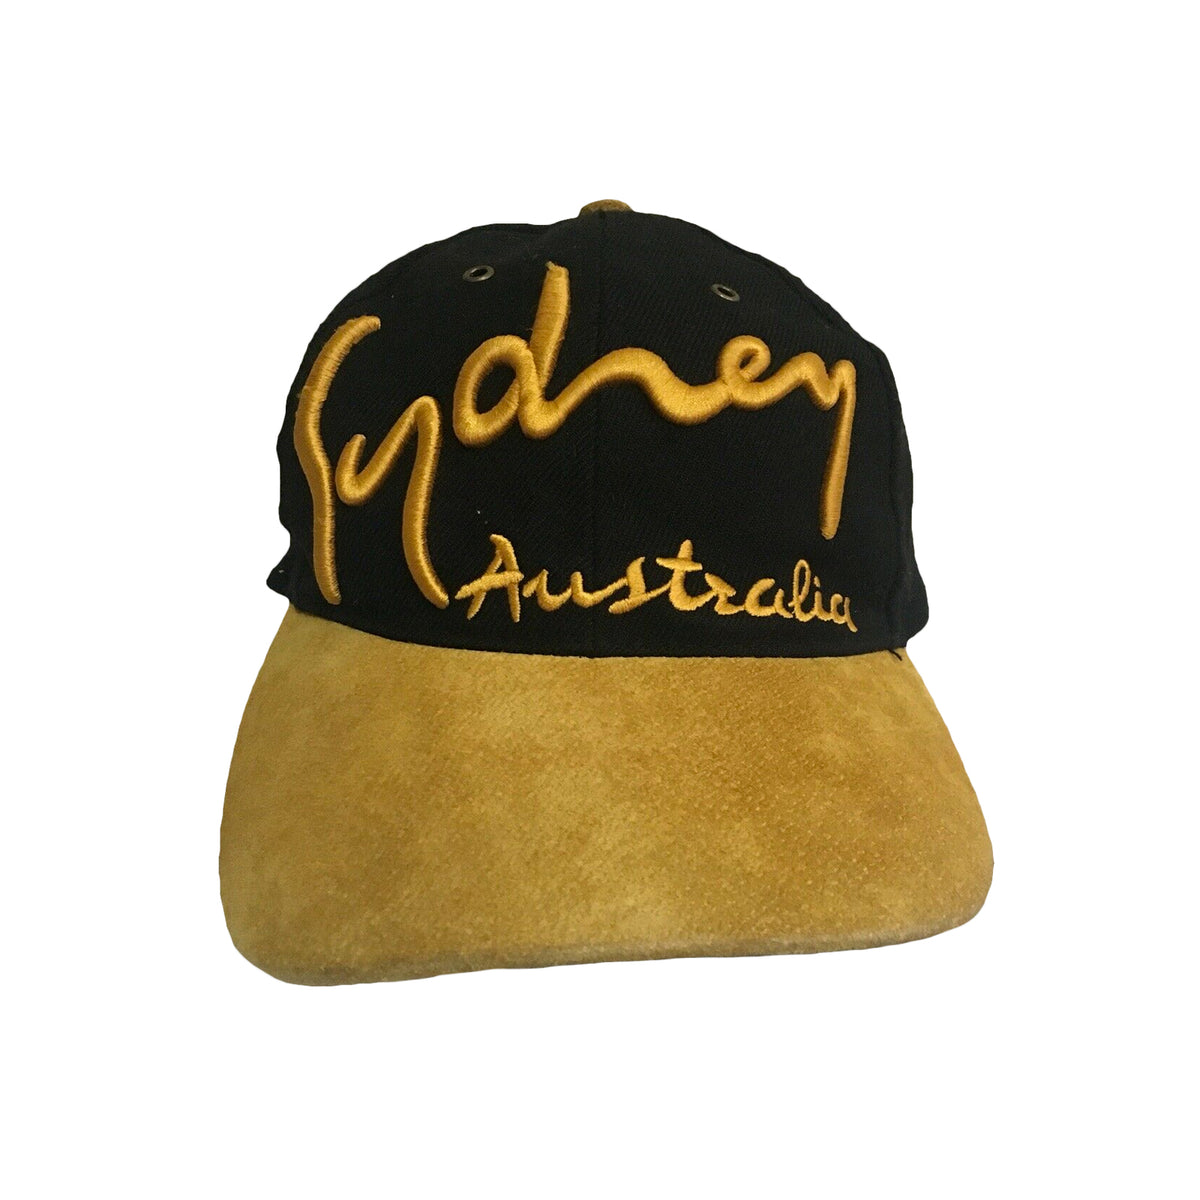 Sydney Australia Down Under Vintage Mens Baseball Cap